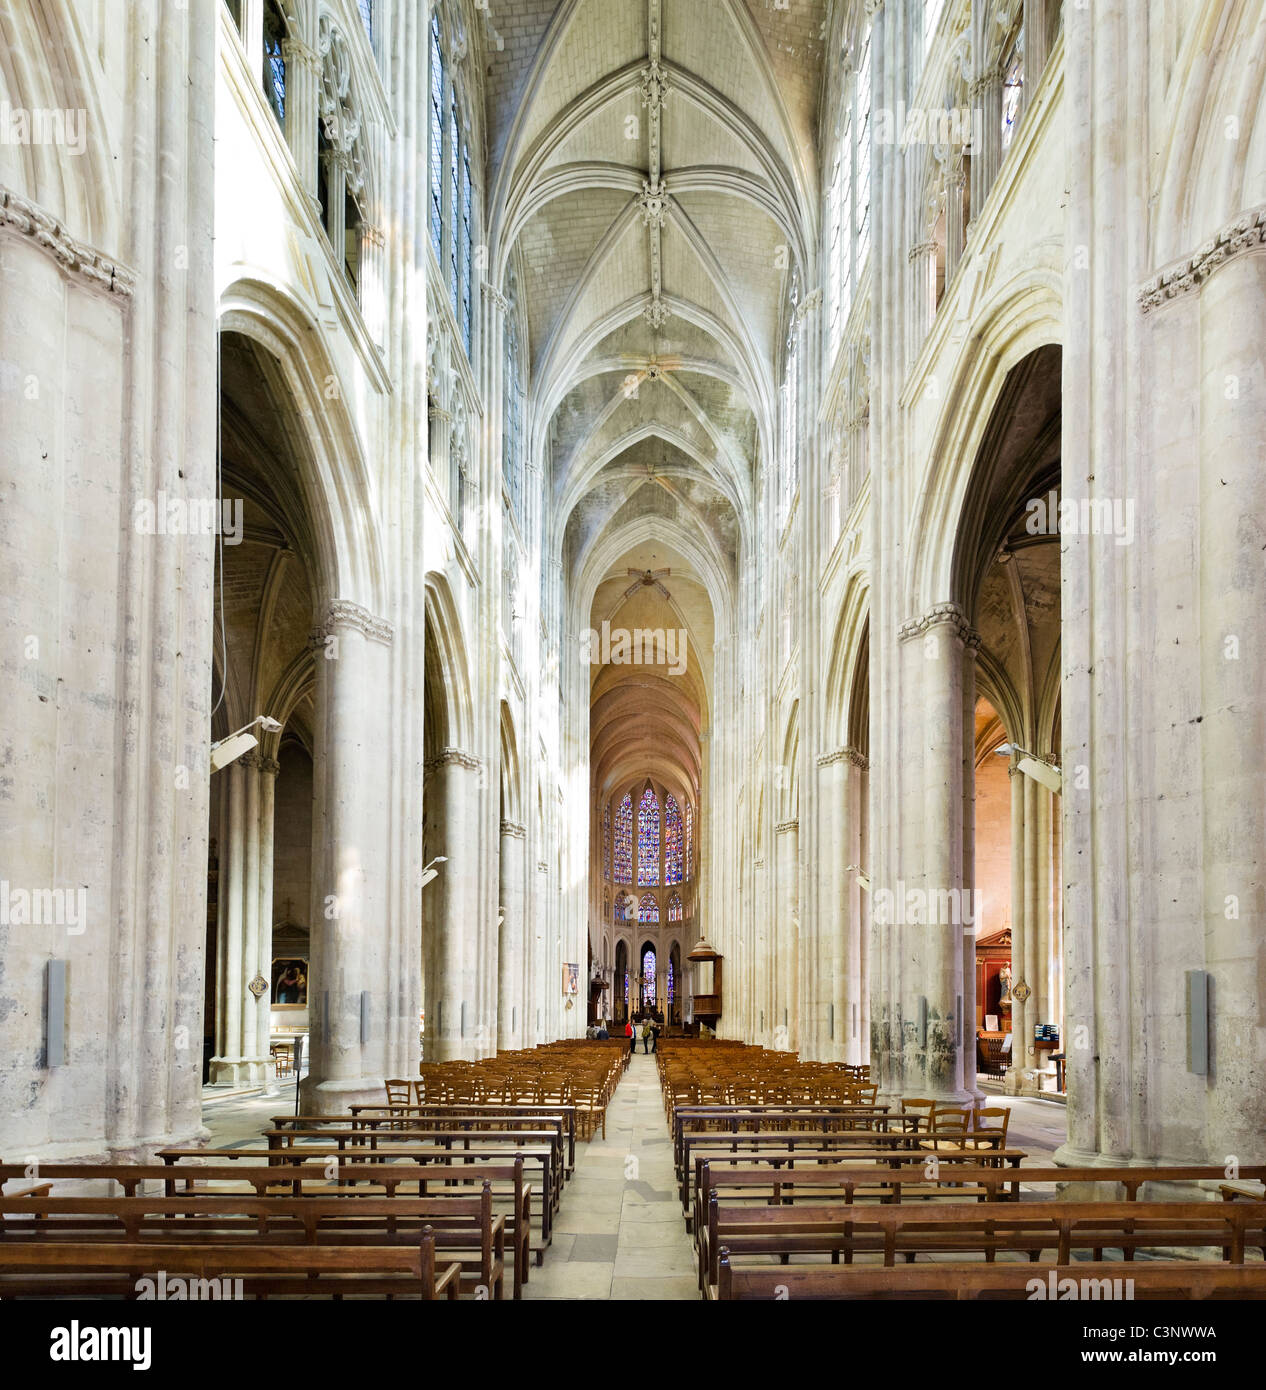 The interior of Tours Cathedral (Cathedrale Saint Gatien), Tours, Indre et Loire, France - Stock Image